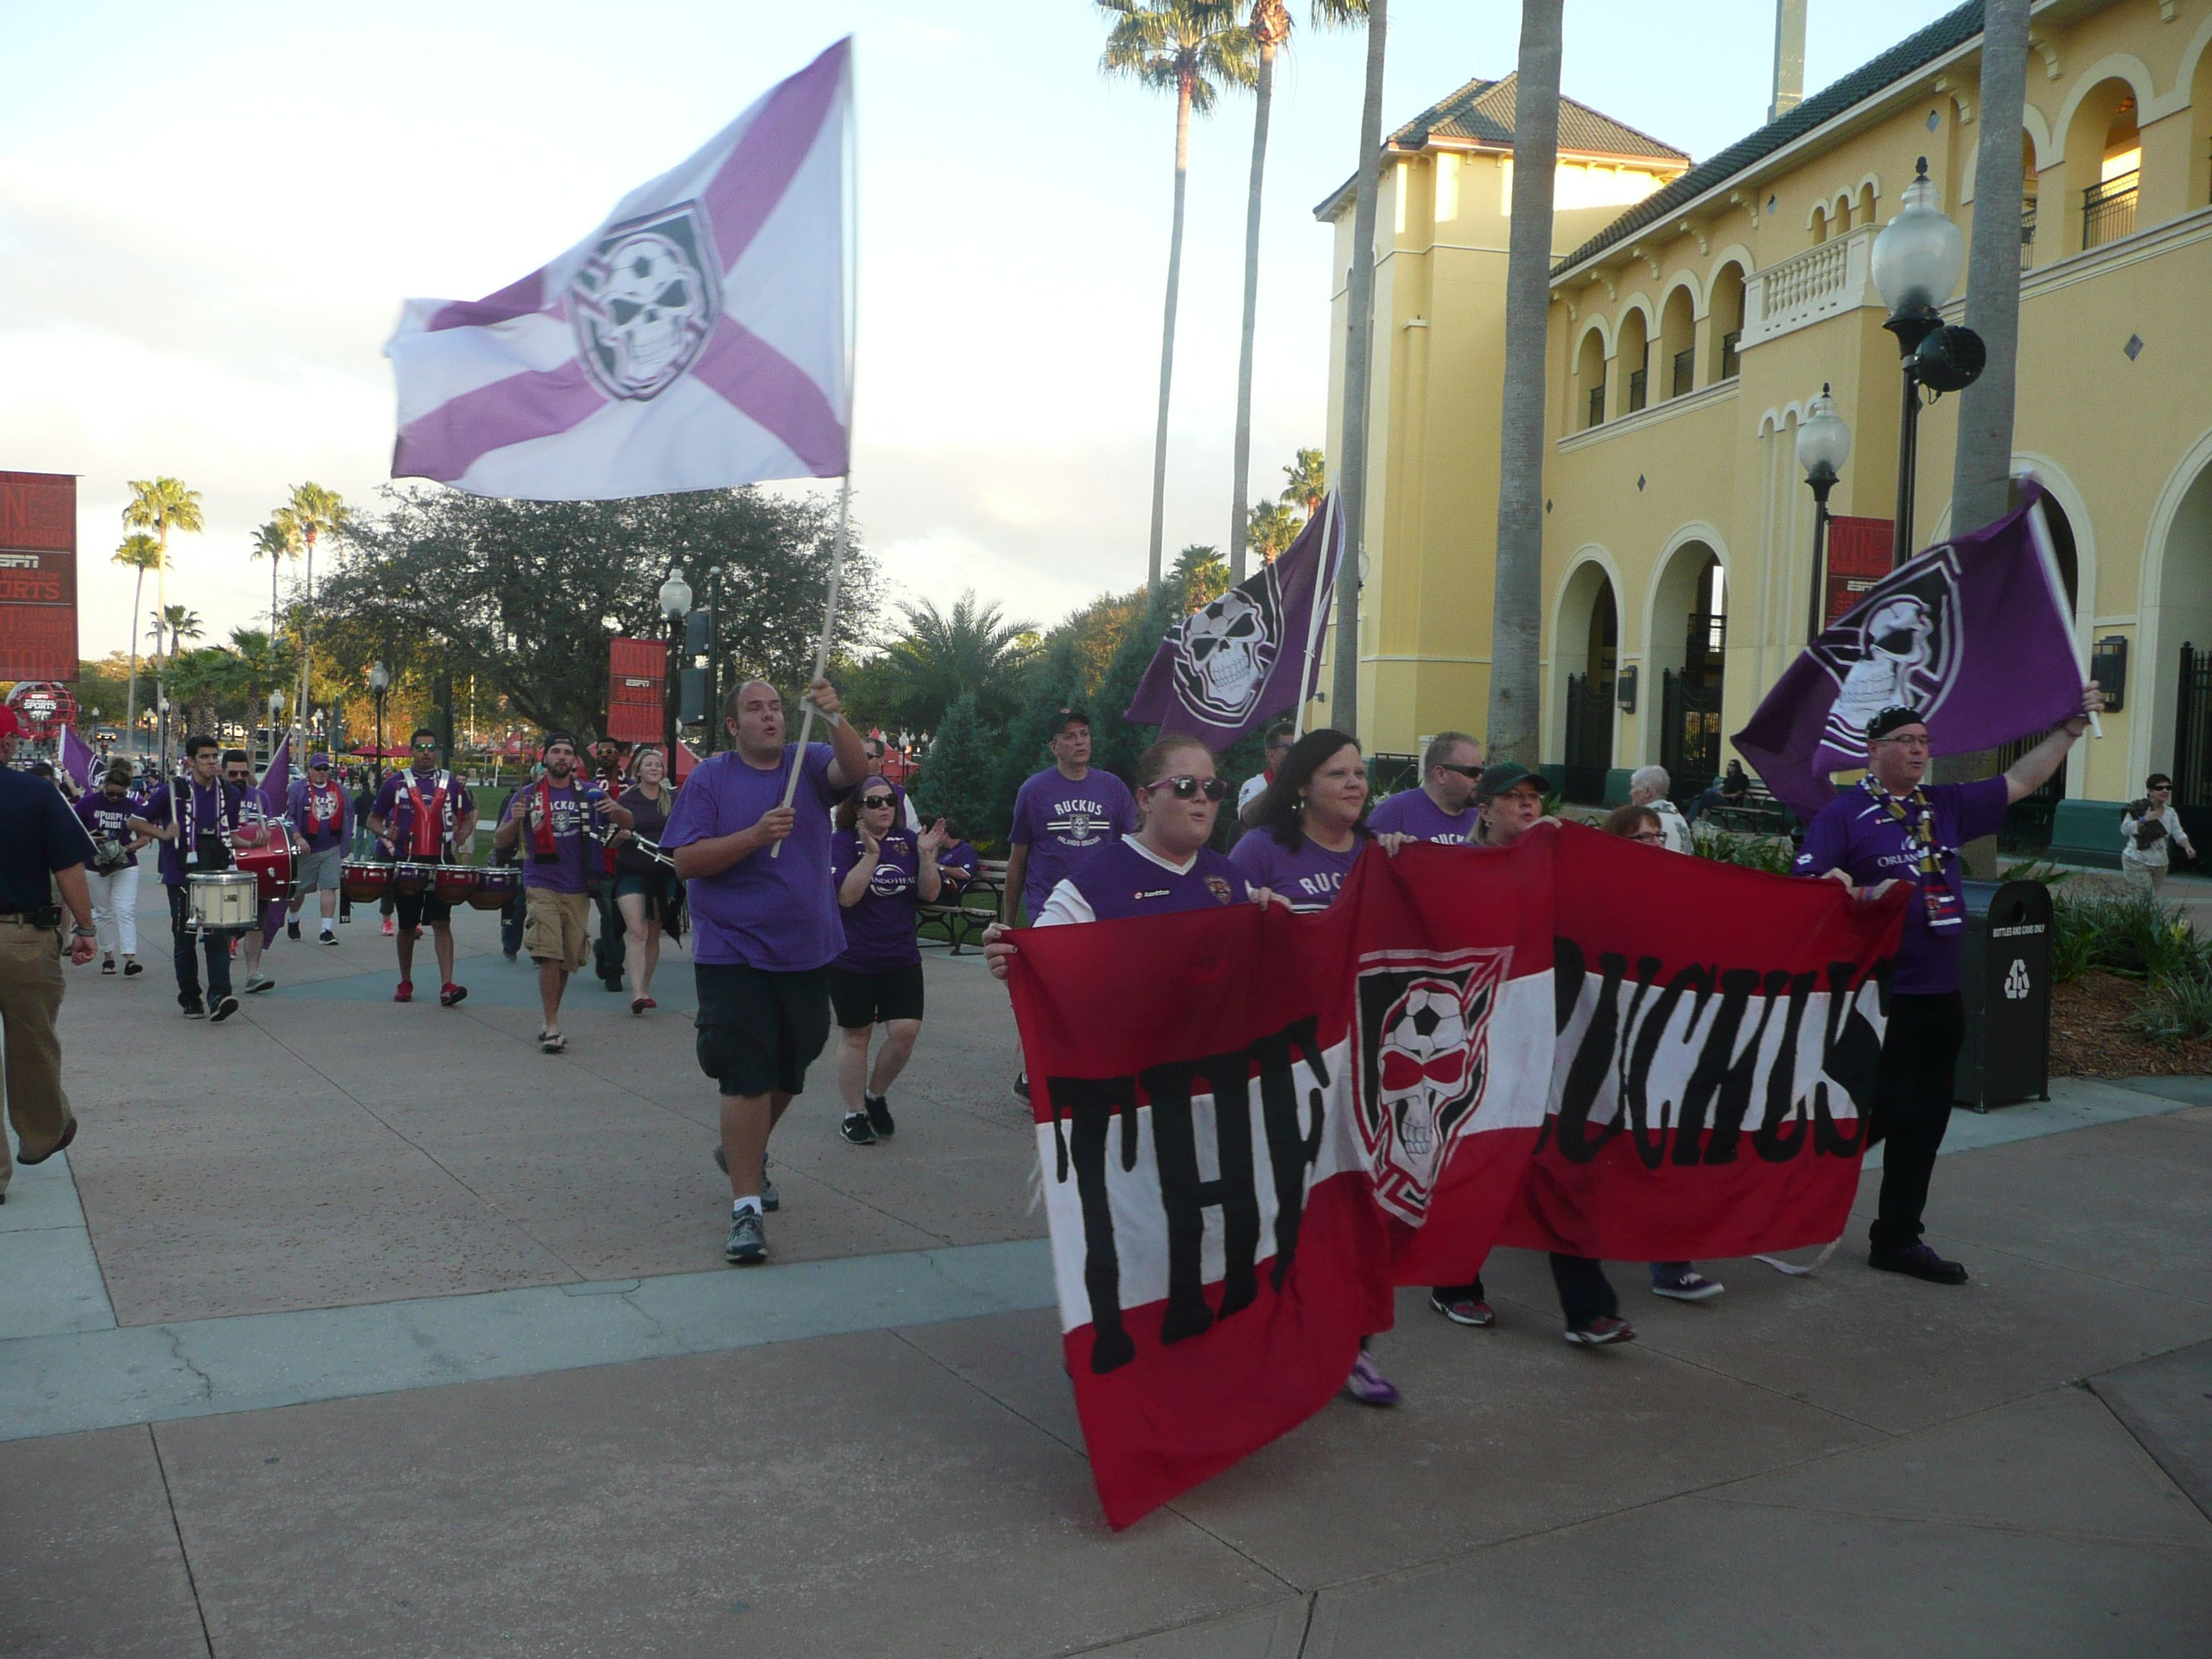 March to the match Orlando City